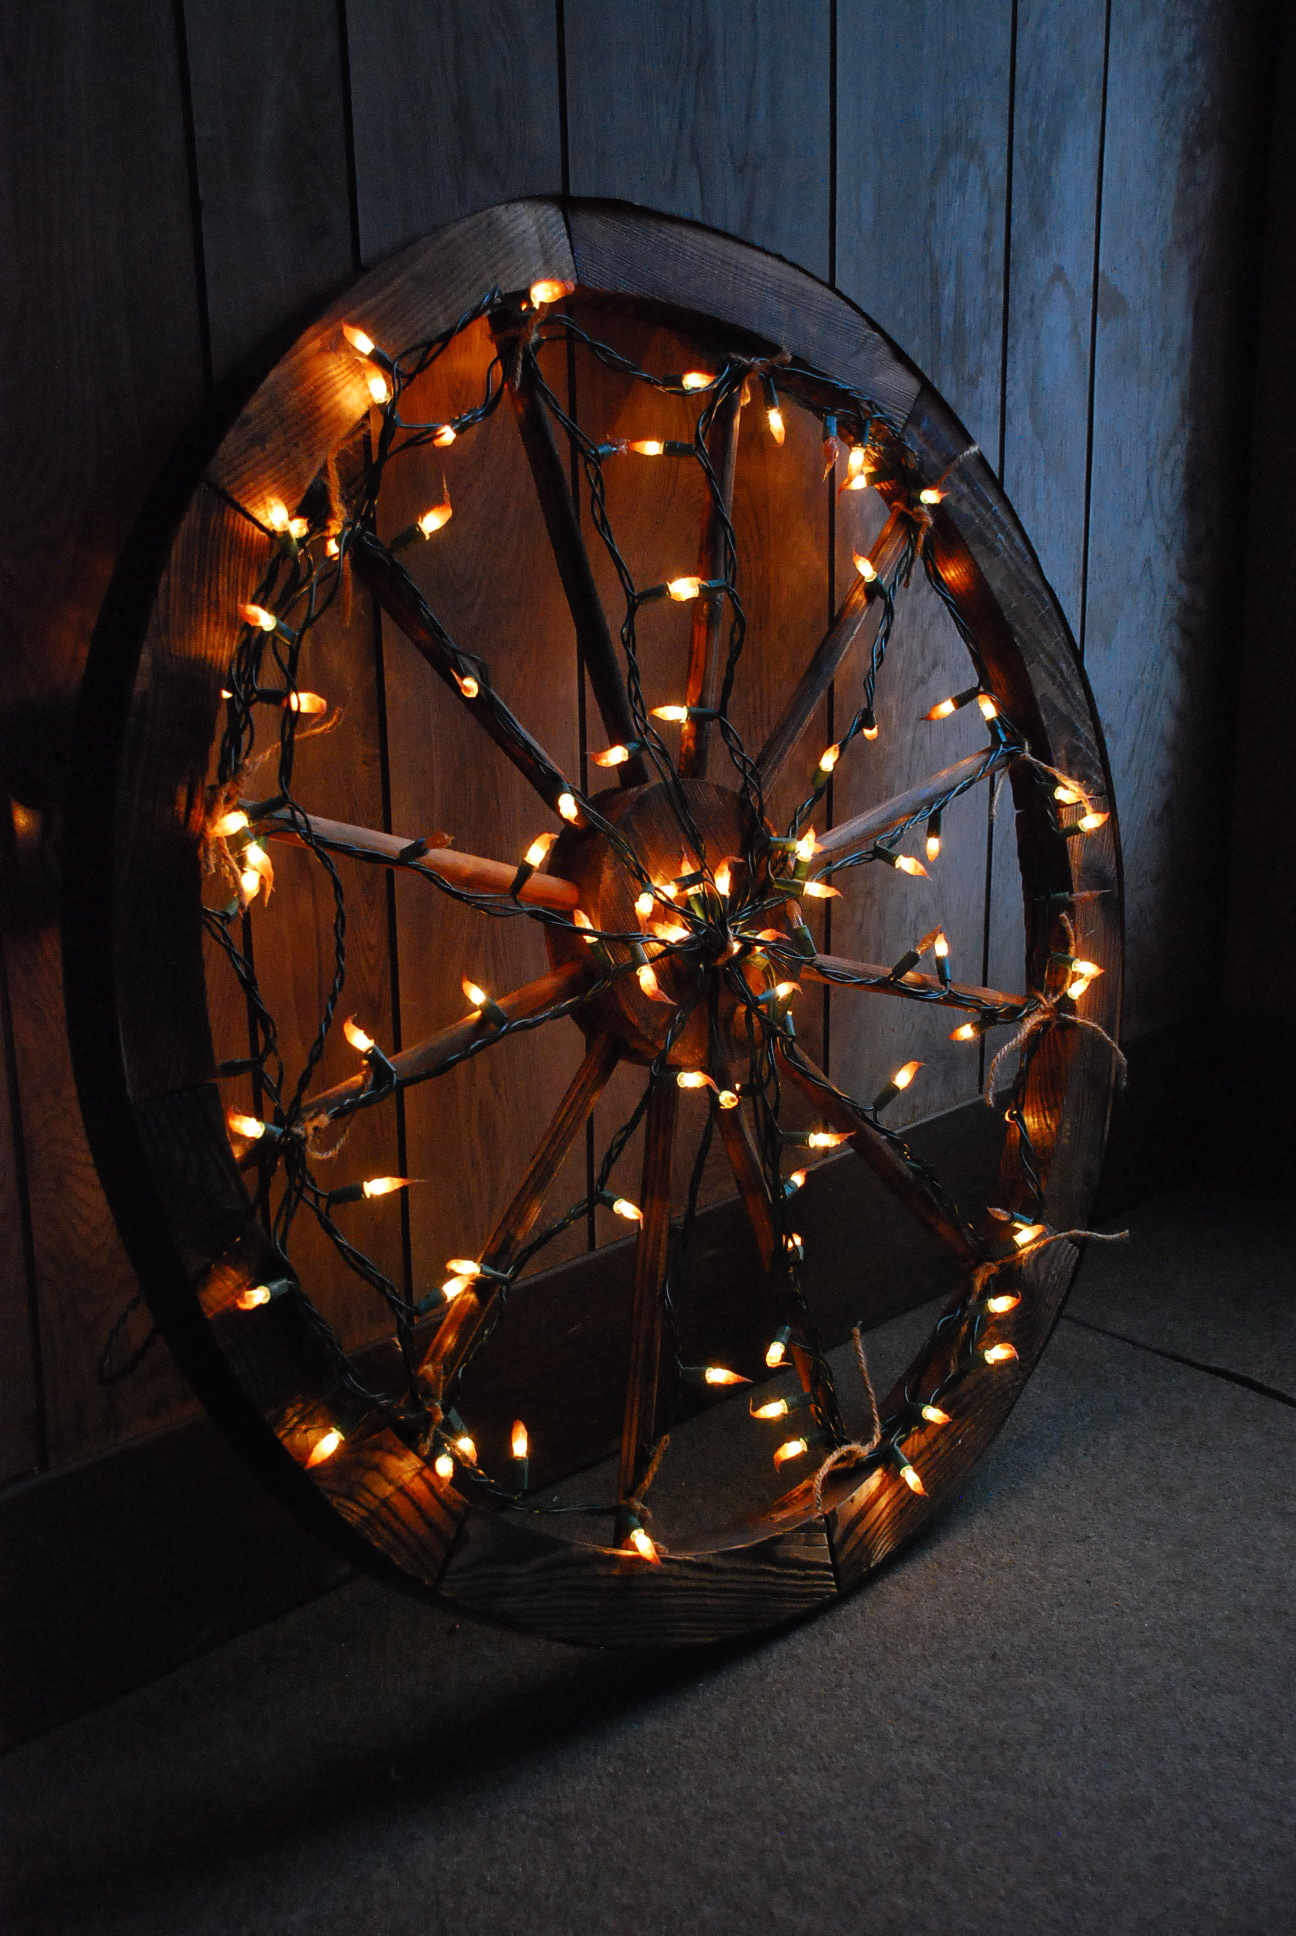 Wooden Spinning Wheel Wrapped in Lights